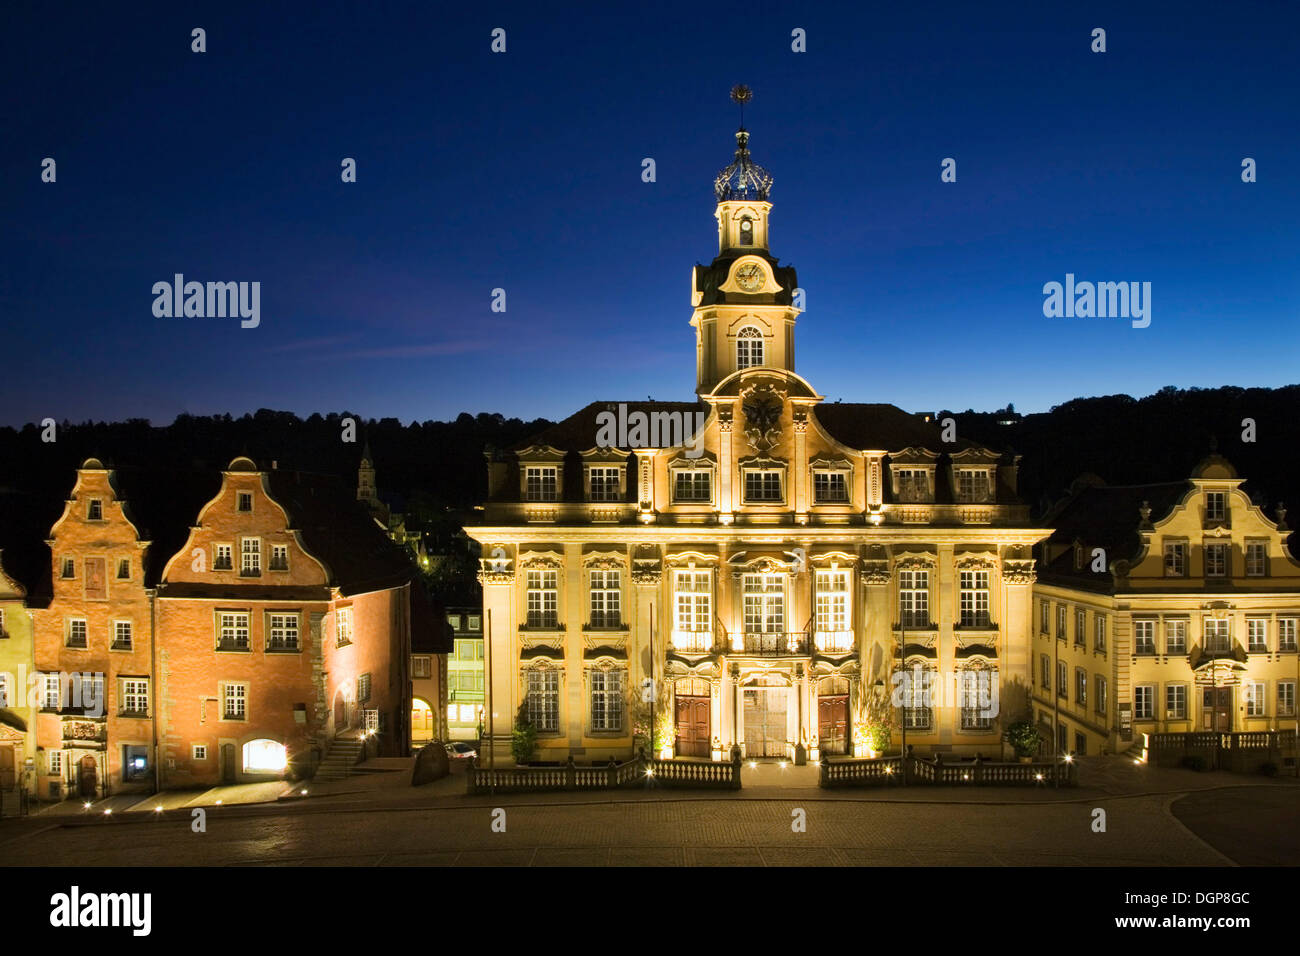 Town hall on the marketplace in Schwaebisch Hall, Hohenlohe, Baden-Wuerttemberg - Stock Image